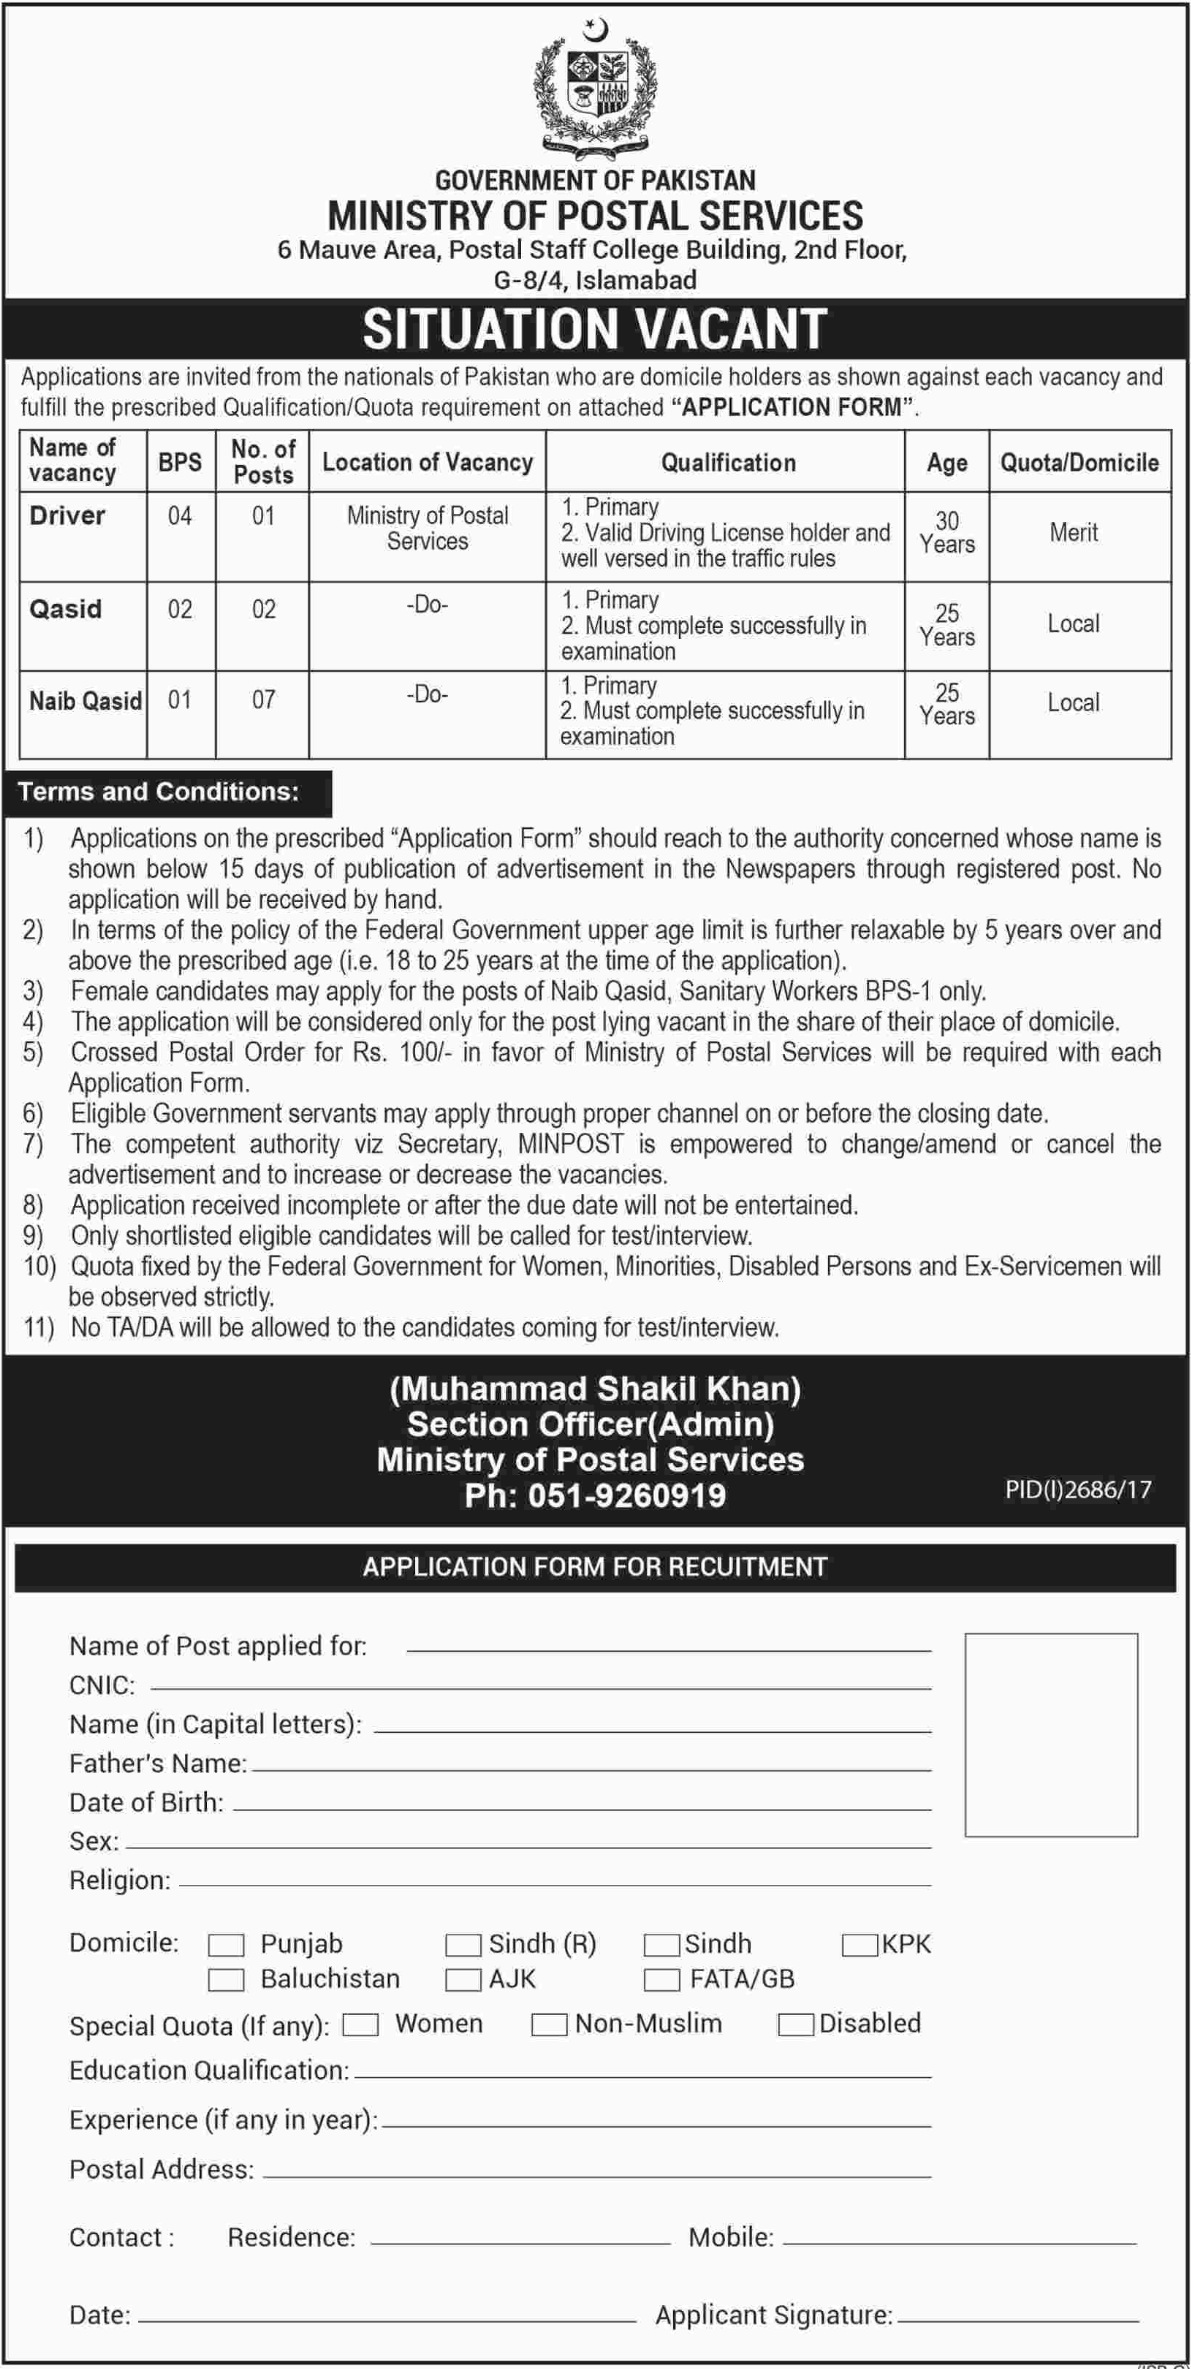 Ministry of Postal Services Pakpost Govt of Pakistan Jobs